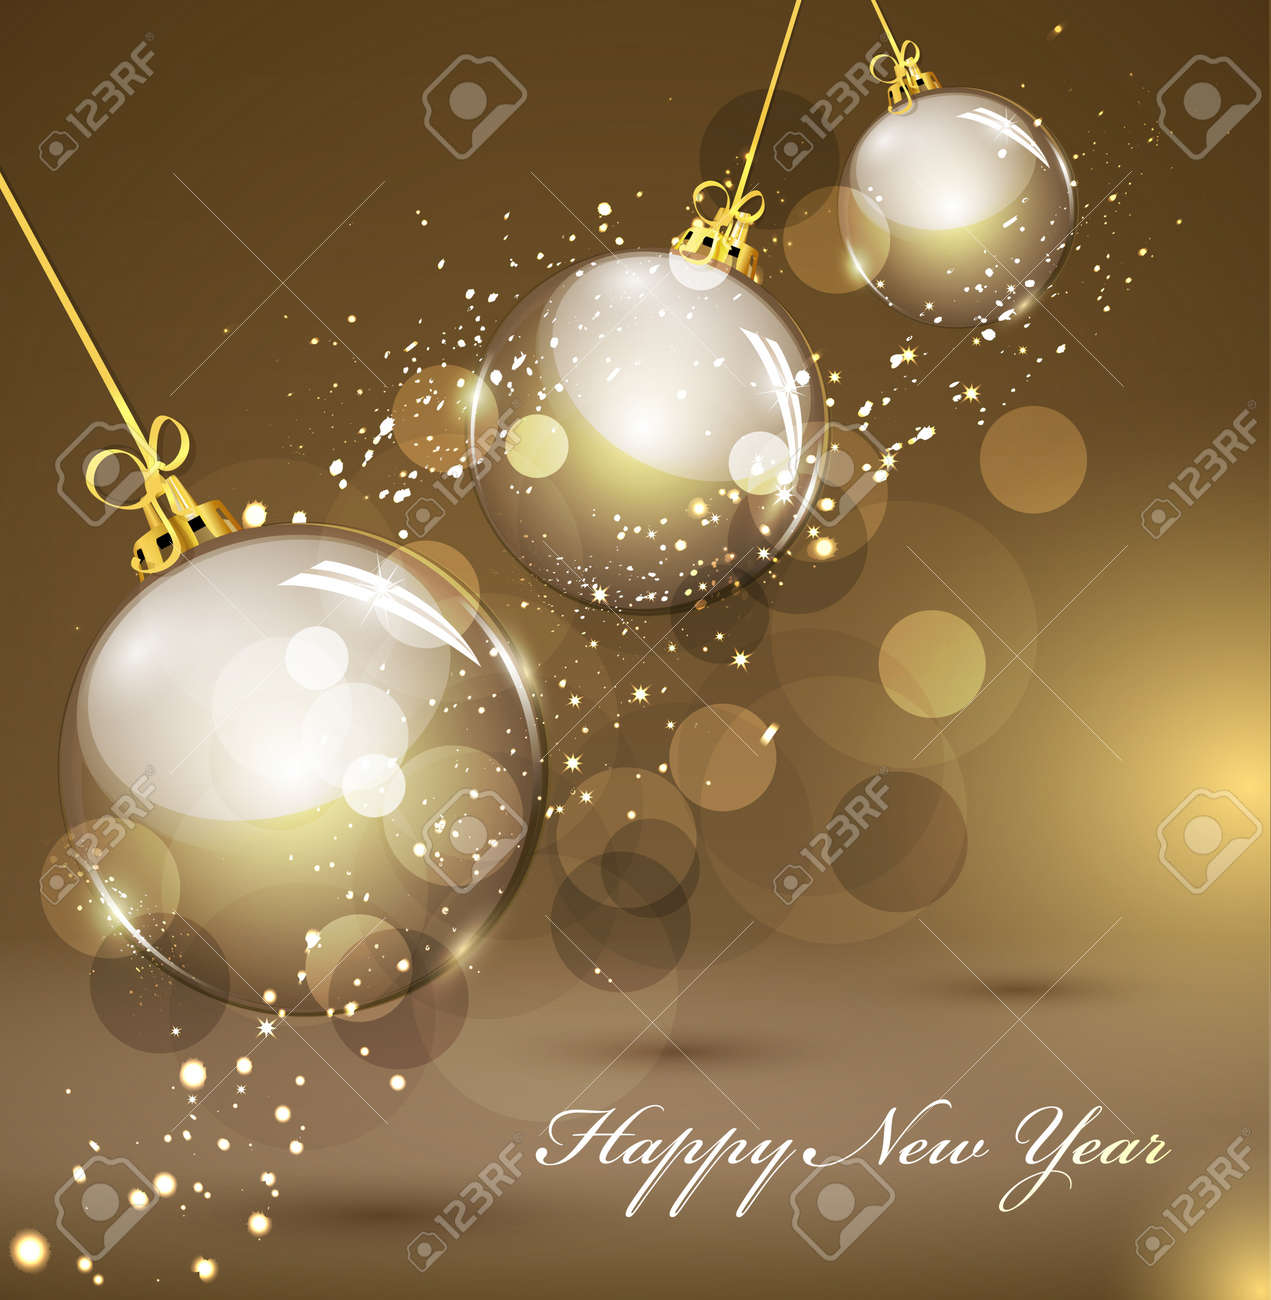 New Year's gold background with gold balls - 10864037